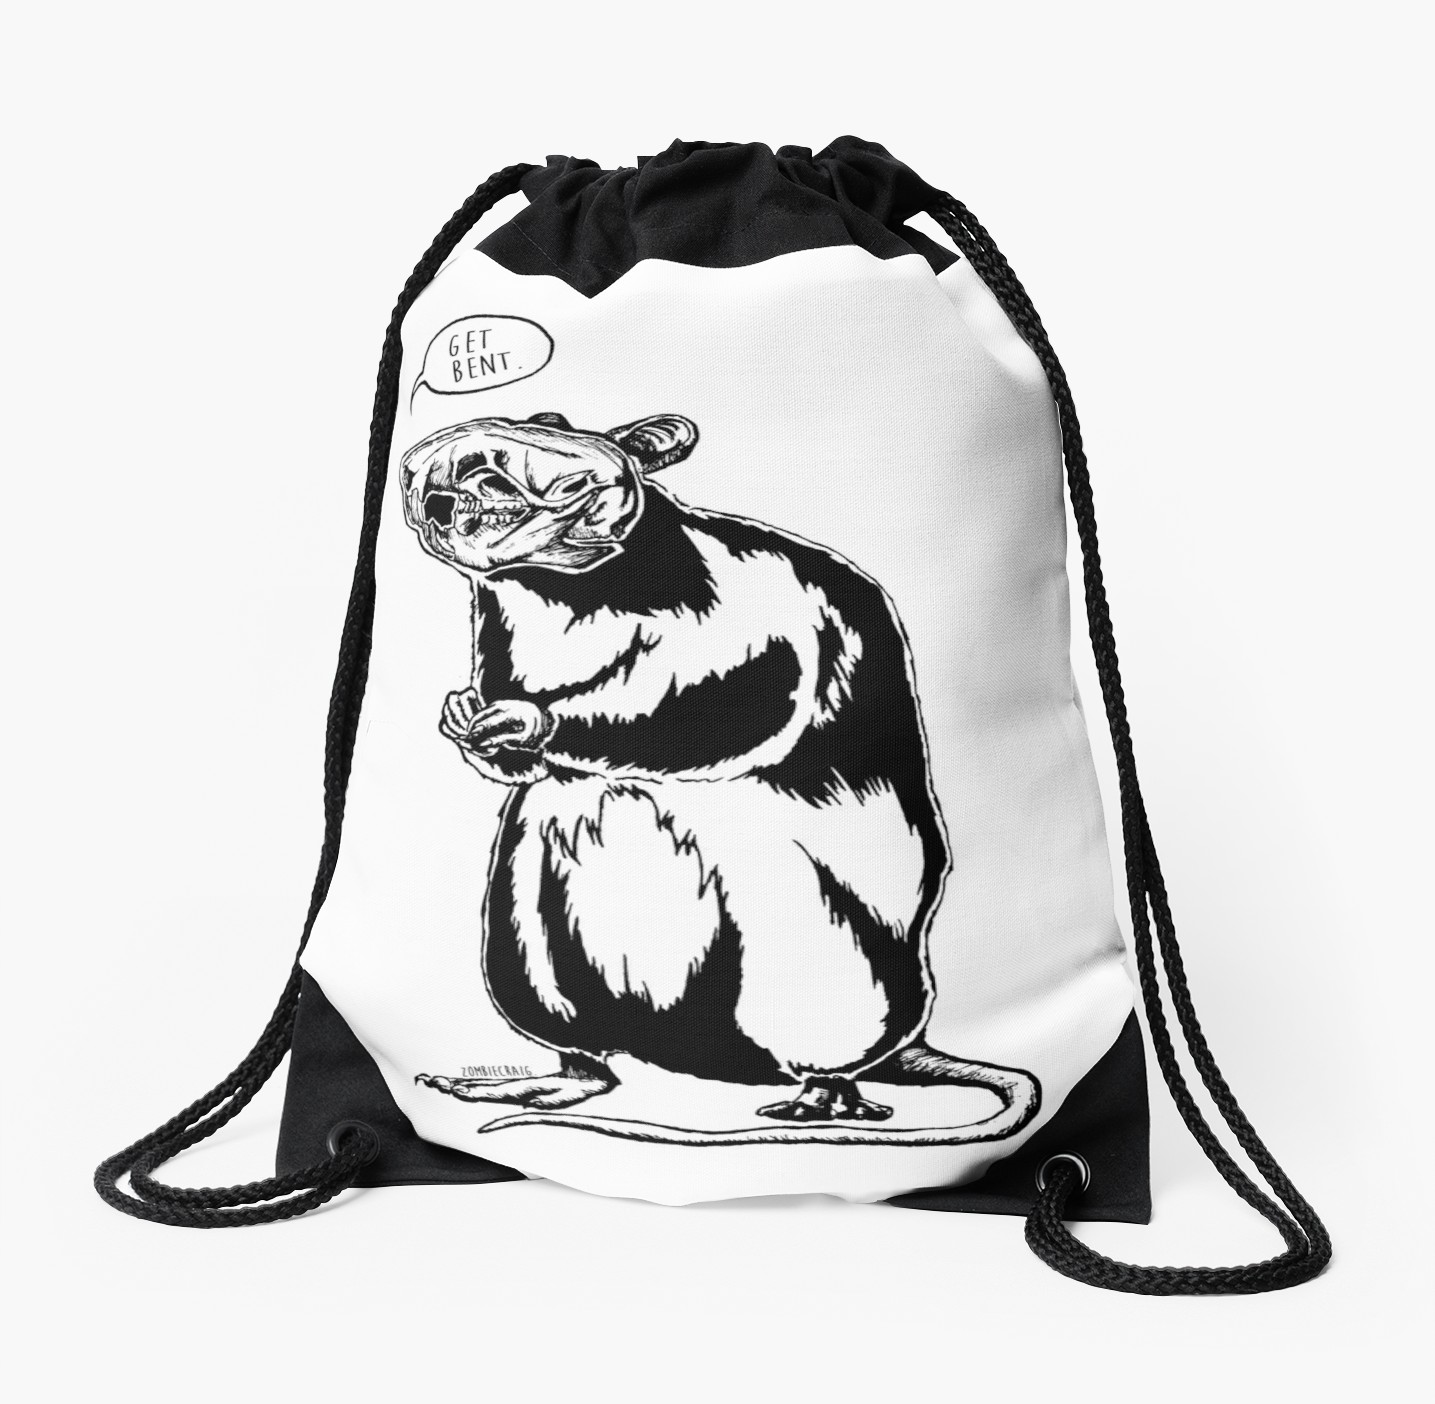 1435x1404 Get Bent Rat Skull Ink Drawstring Bags By Zombiecraig Redbubble